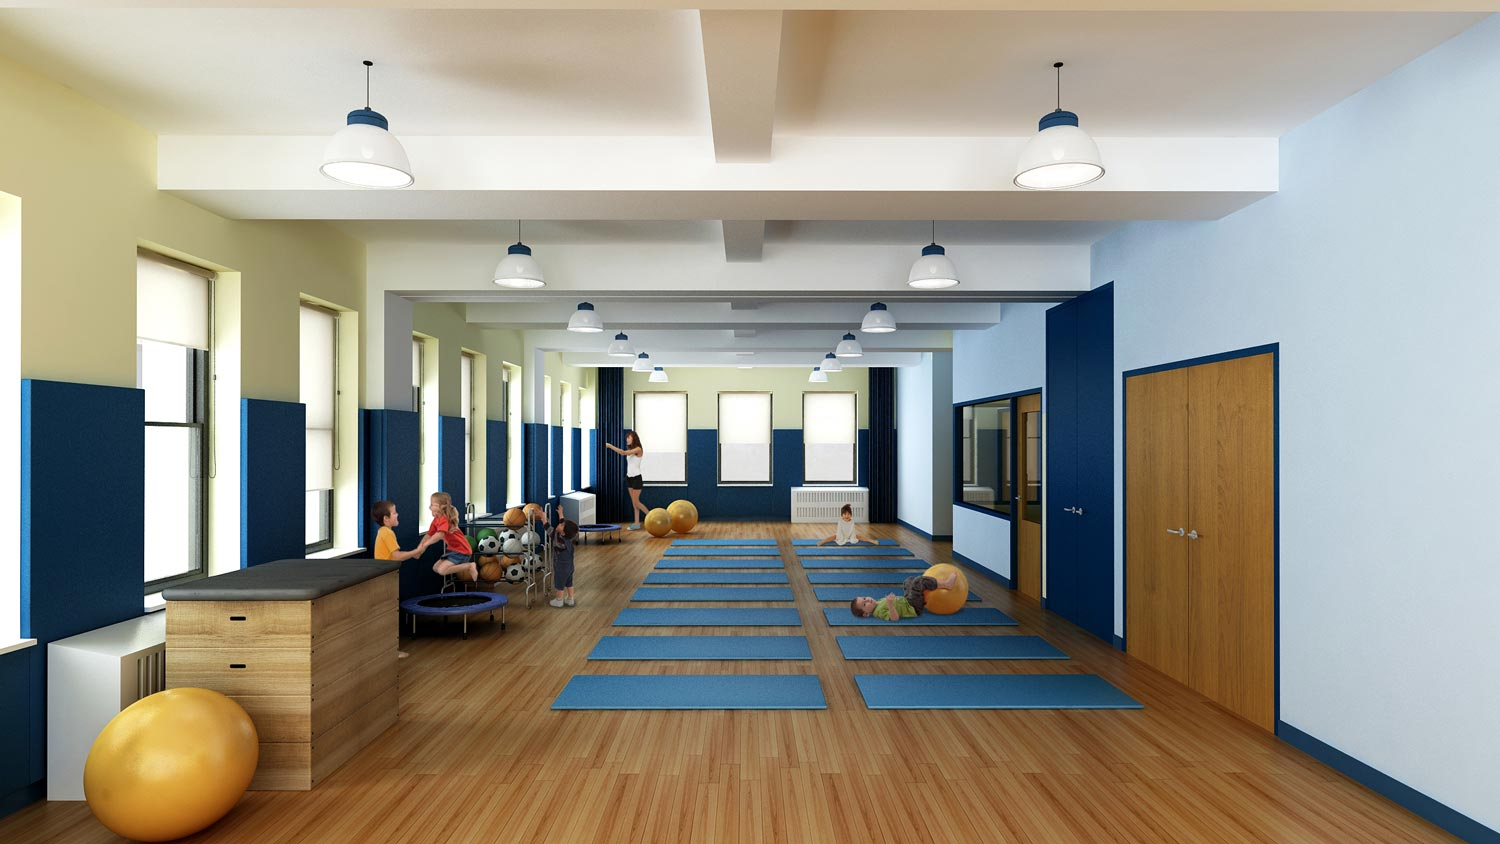 The multi-purpose room at Aaron Academy, a conversion and expansion project by OCV Architects.